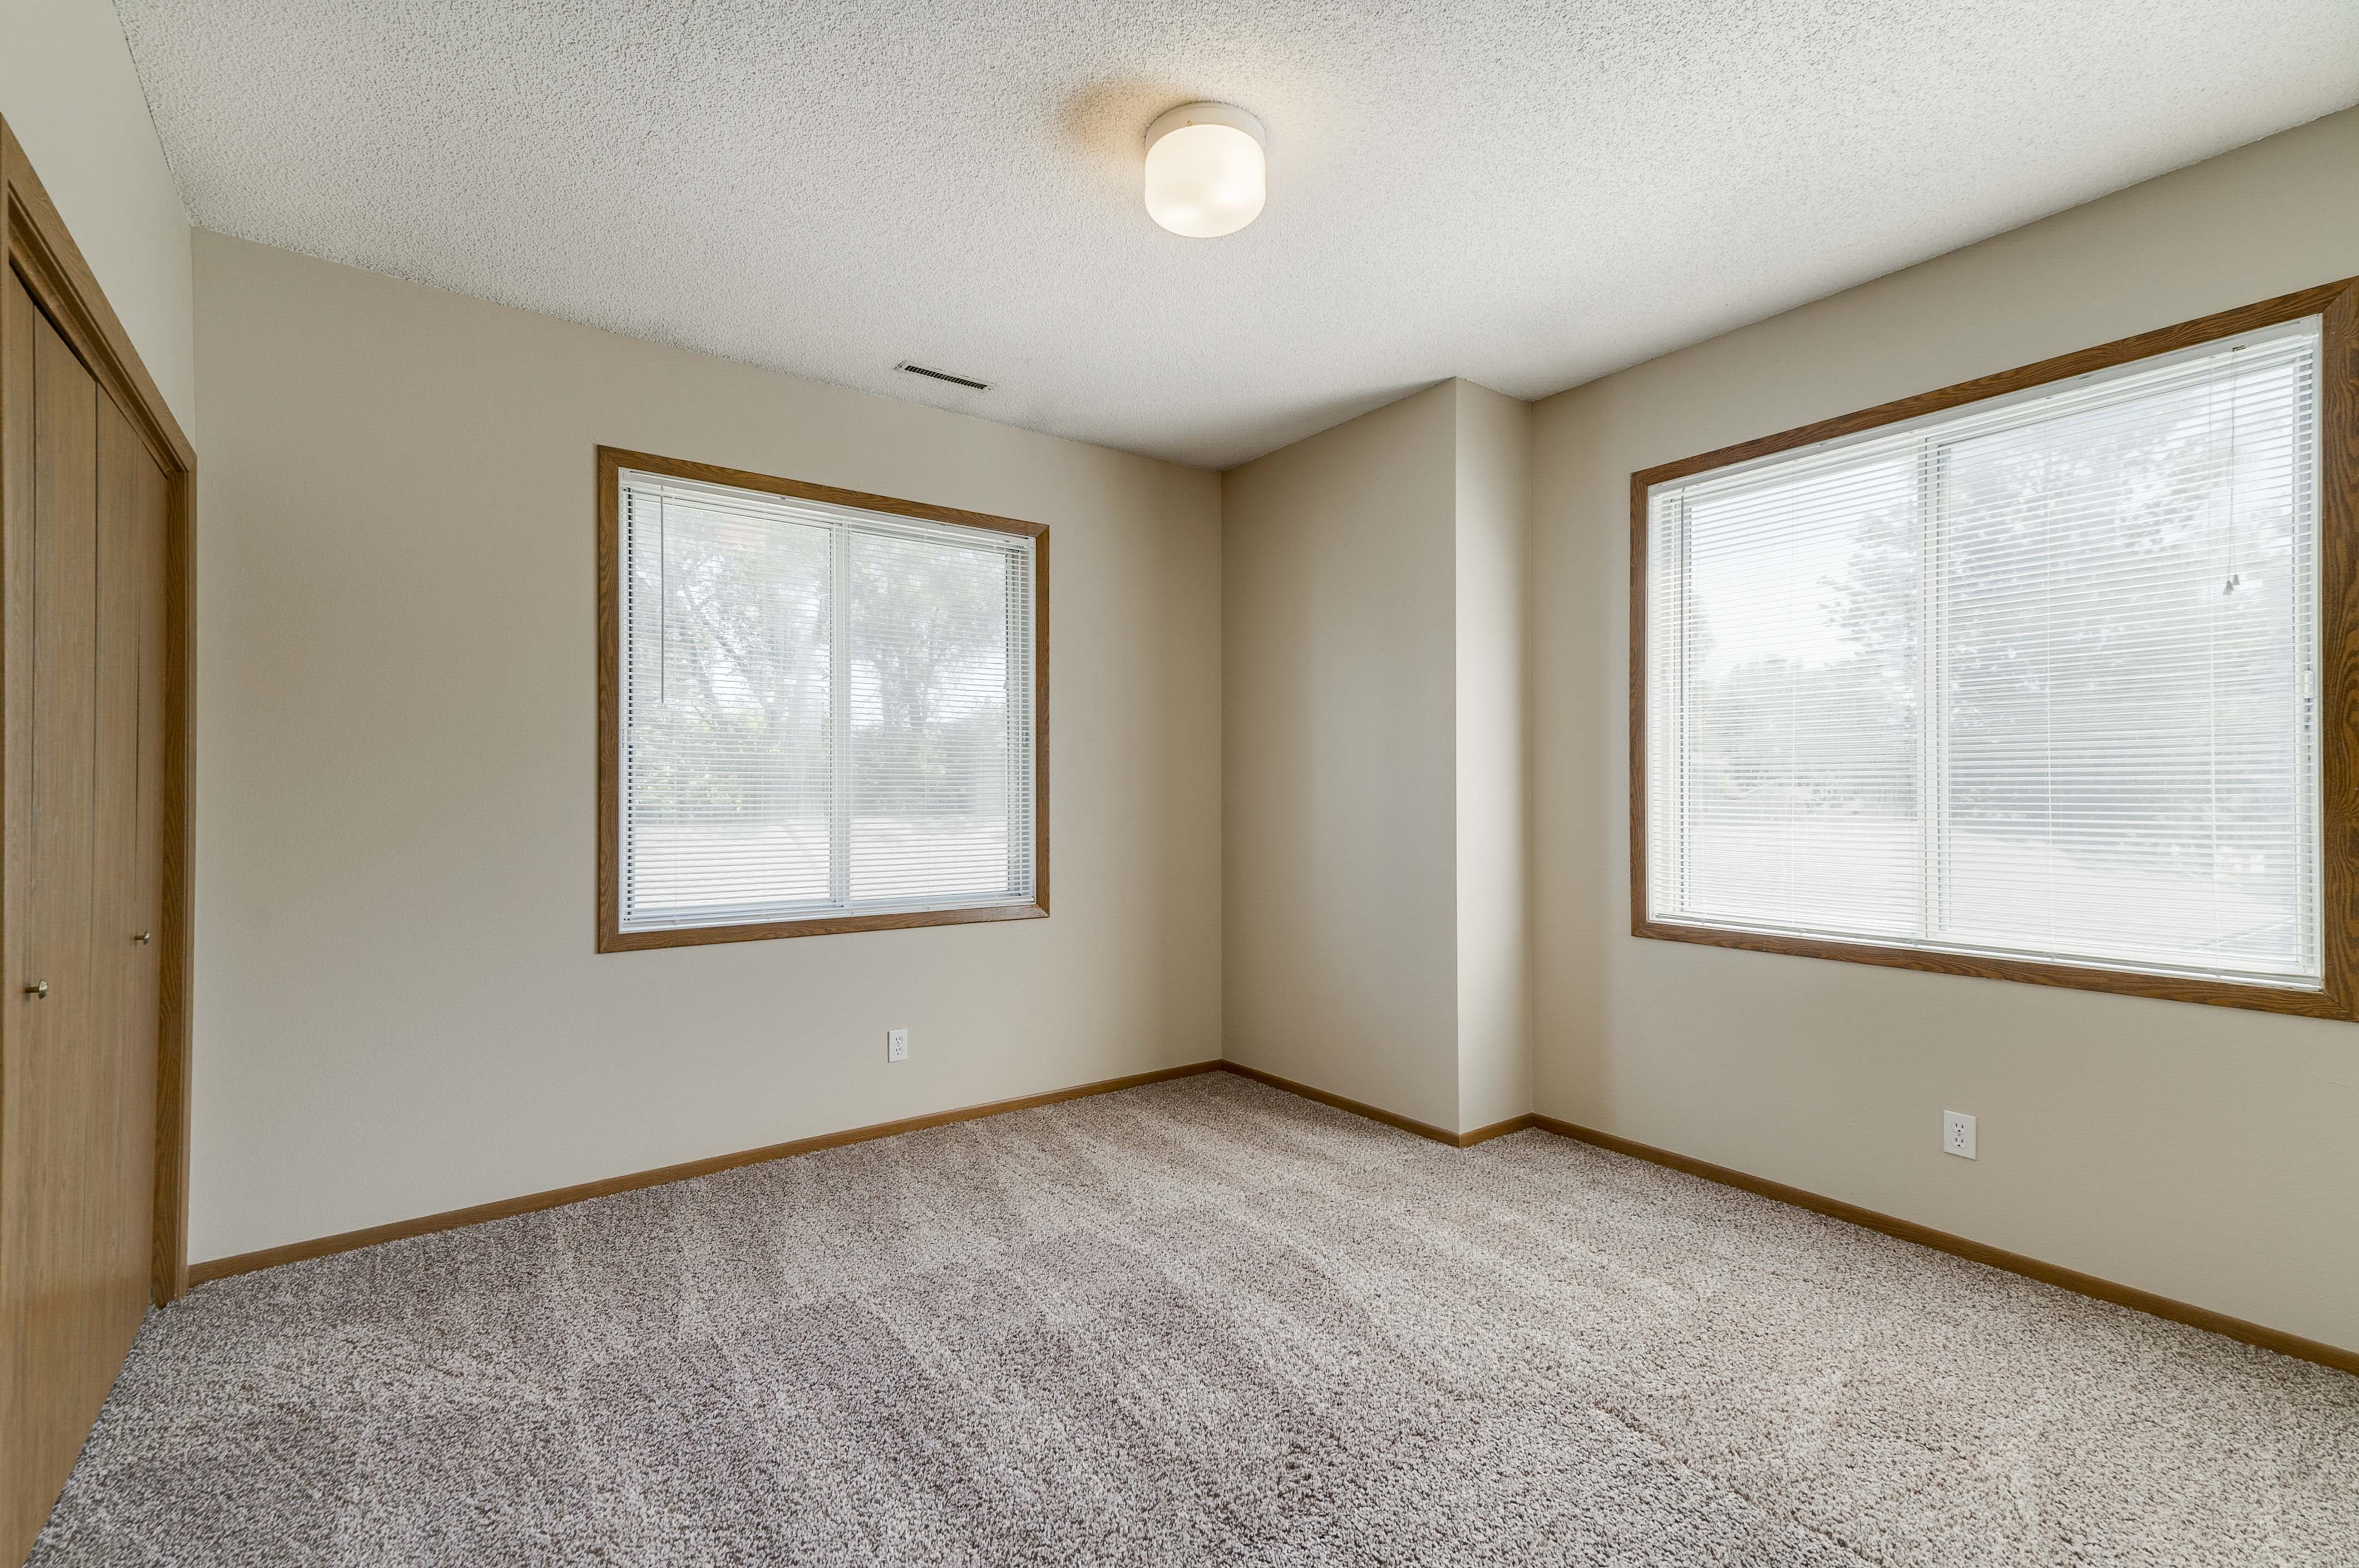 Empty bedroom with two large windows and overhead light